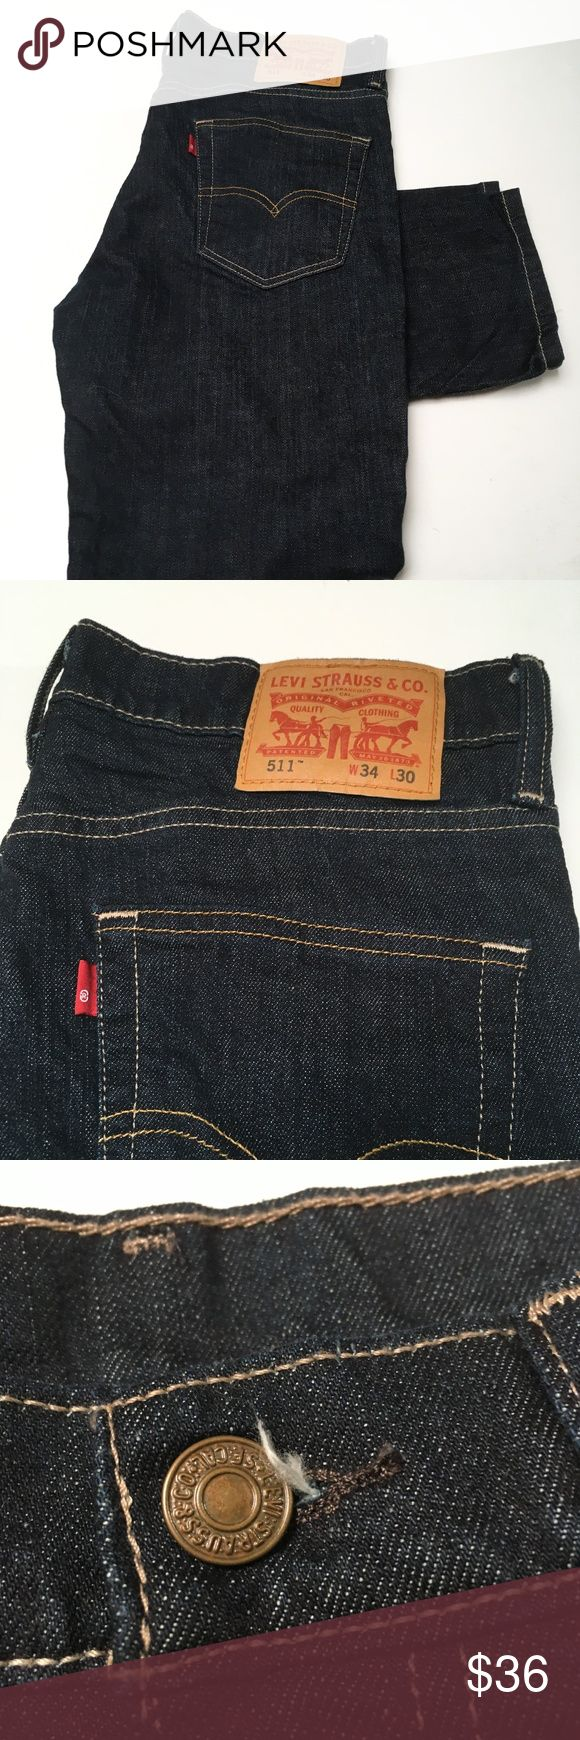 LEVIS 511 Denim Jeans 34x30 Classic styling. Durable goods.  Smoke and pet free storage. Happy to answer any questions or provide more images. Thanks for looking Levis Jeans Slim